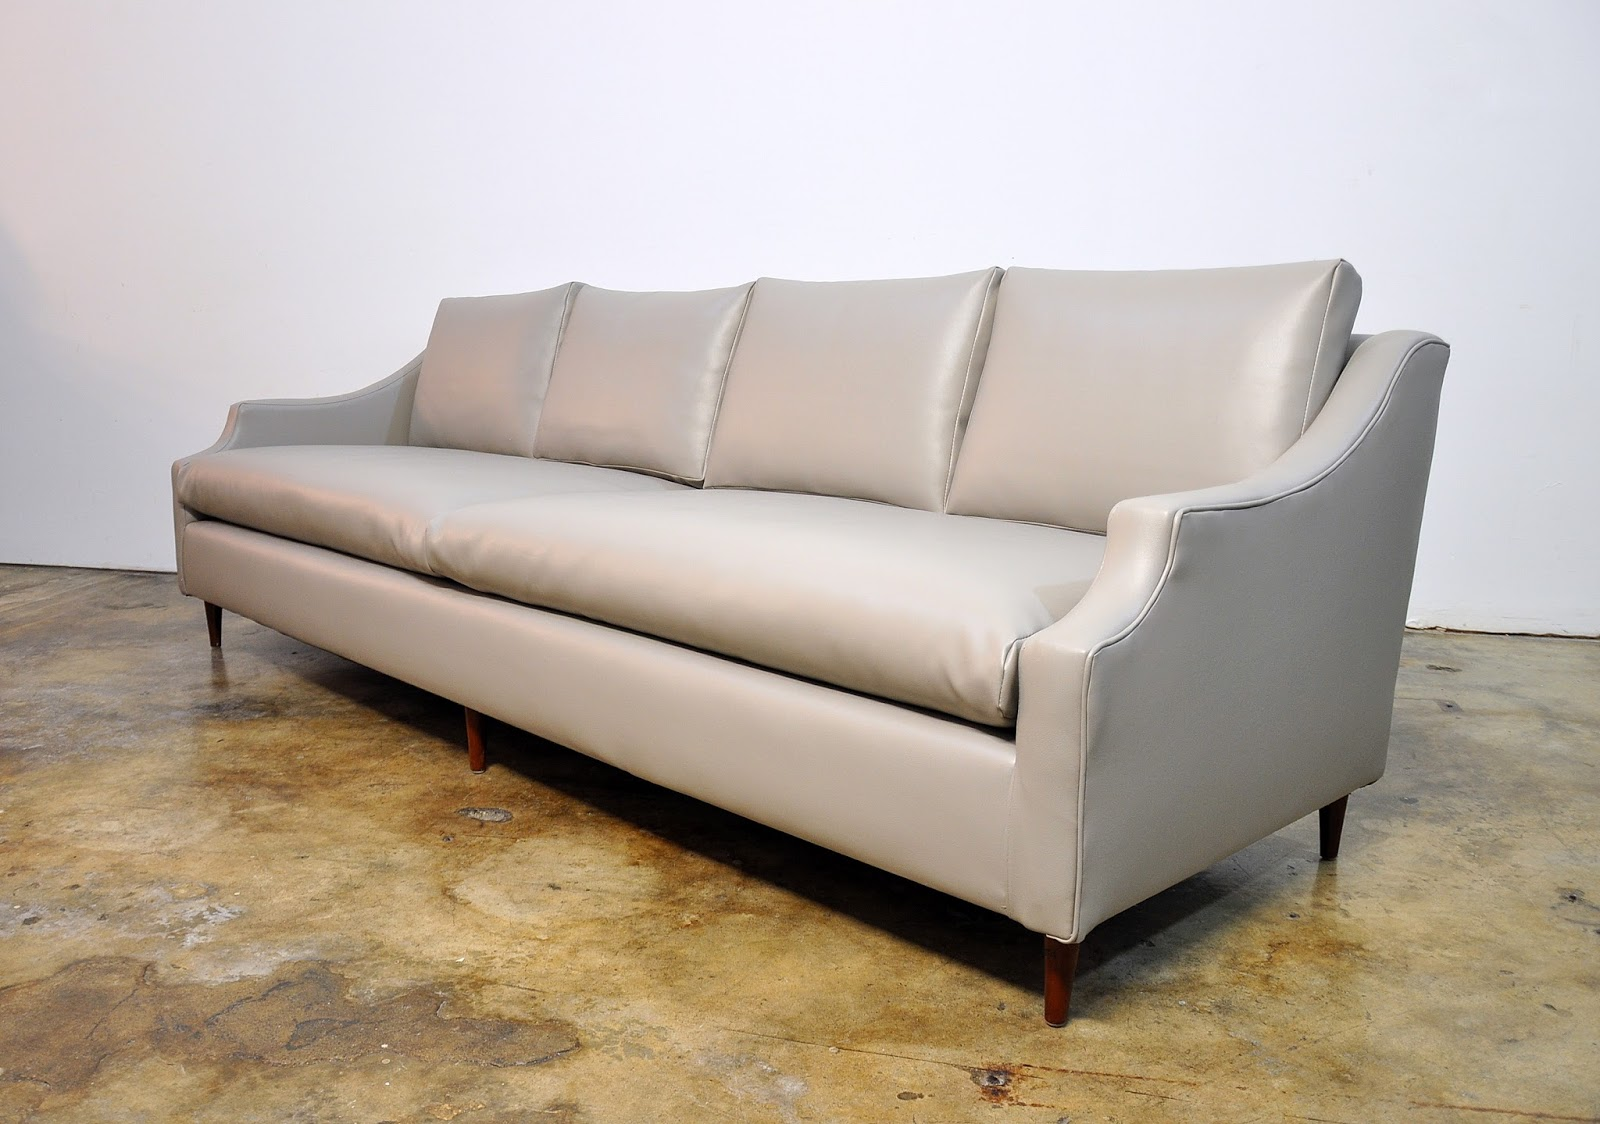 Mid Century Modern Light Gray Sofa Avery Lovesac Sleeper Select